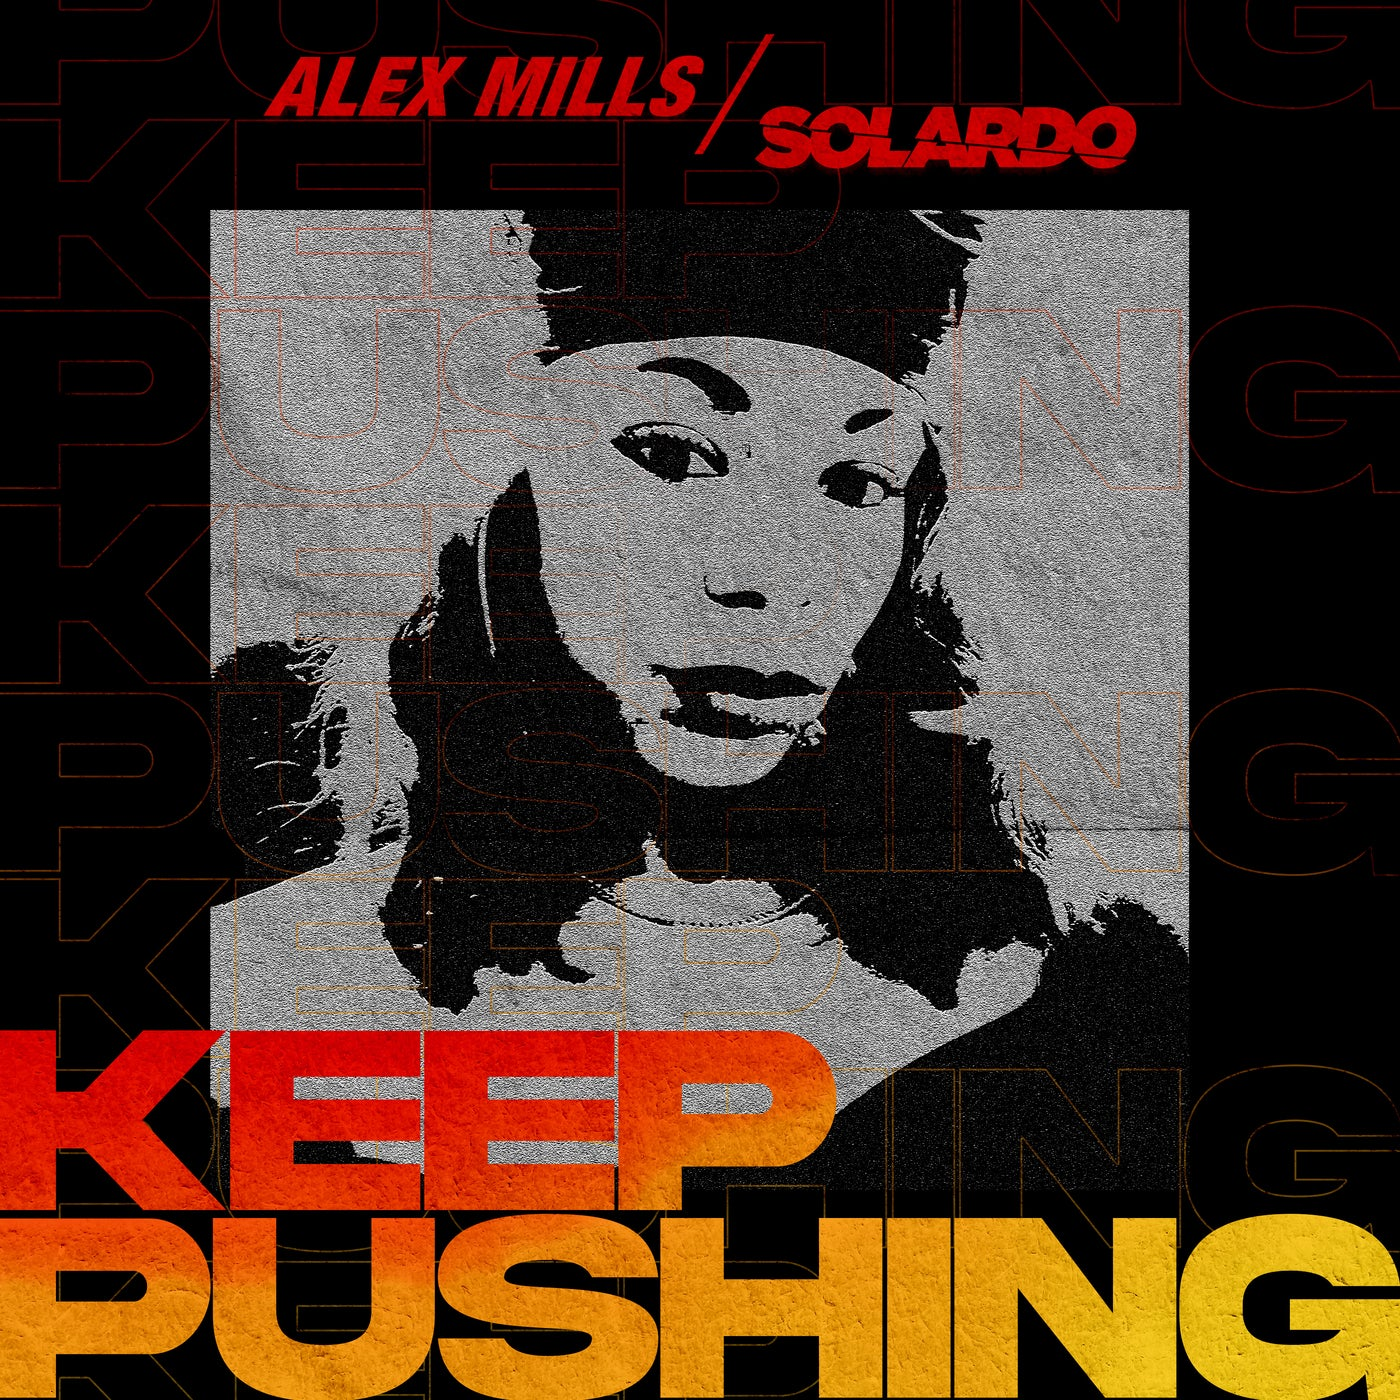 Keep Pushing (Extended Mix)